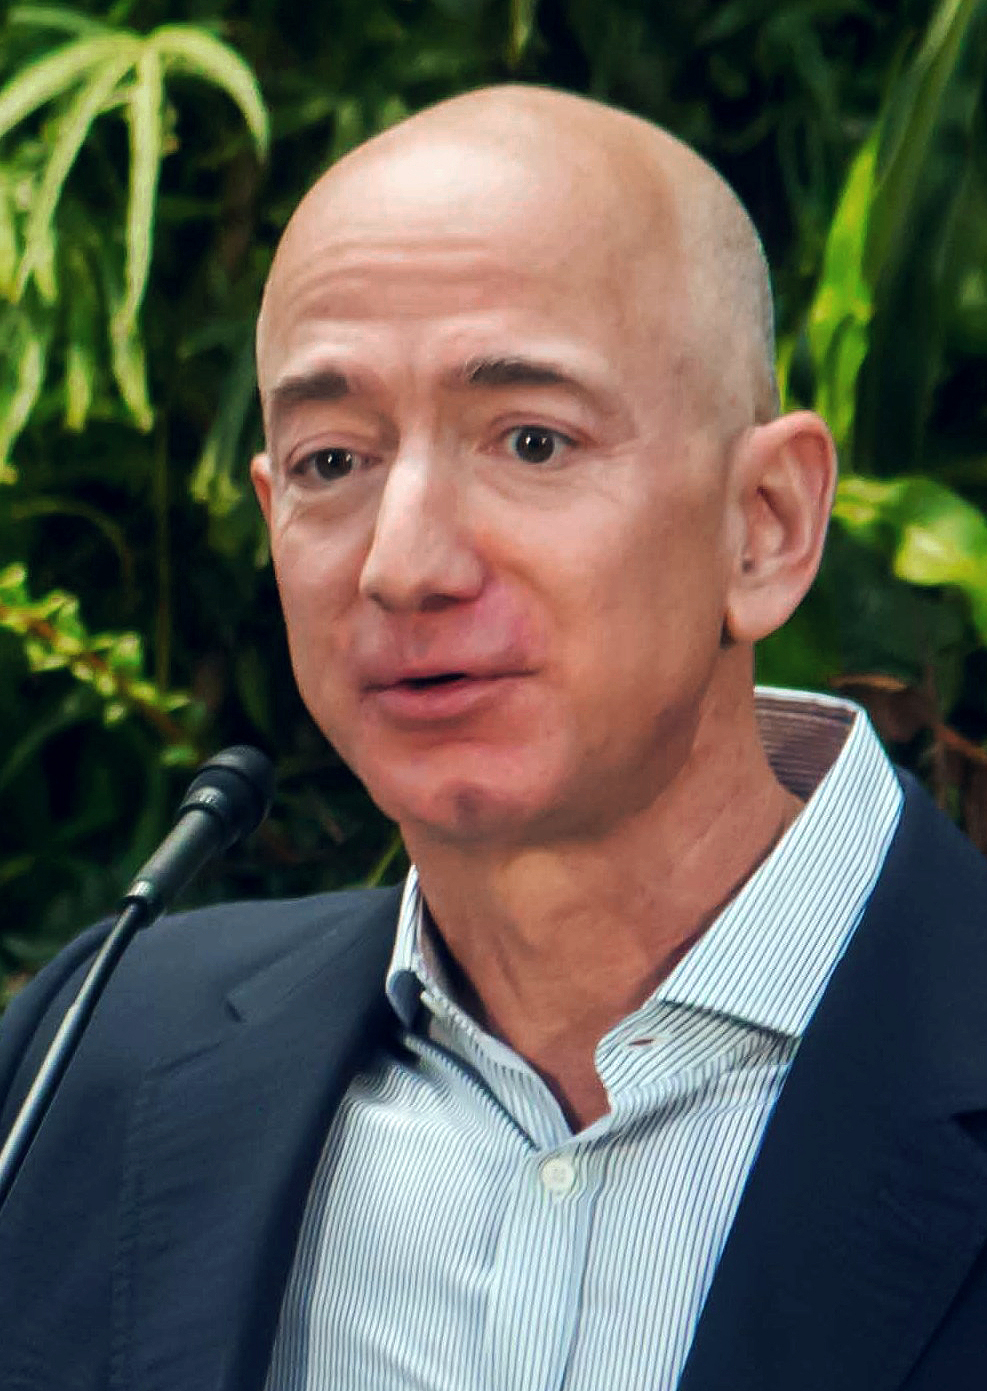 Jeff Bezos Salary Amazon Prime Is On Pace To Become More Popular Here39s A Fantastic Diagram Of What Essentially Cable Network Looks 2018 Wife Net Worth Tattoos Smoking And Body